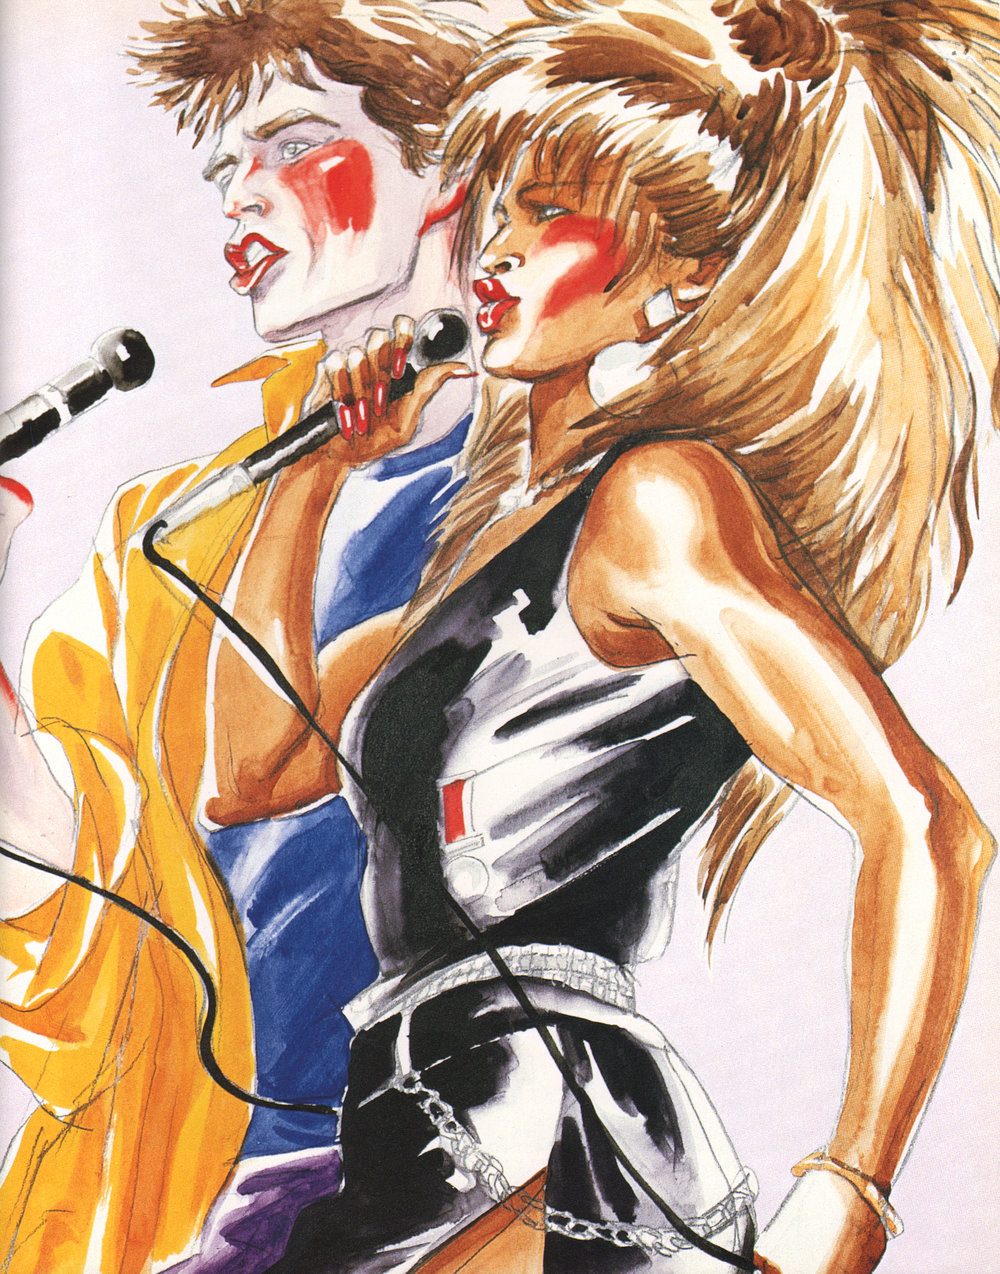 """Antonio Lopez, Tina Turner and Mick Jagger, 1986, Pencil/watercolor on paper, 17"""" x 14"""", Courtesy of the Estate of Antonio Lopez &Juan Ramos. Reproduced with permission from Museo del Barrio."""